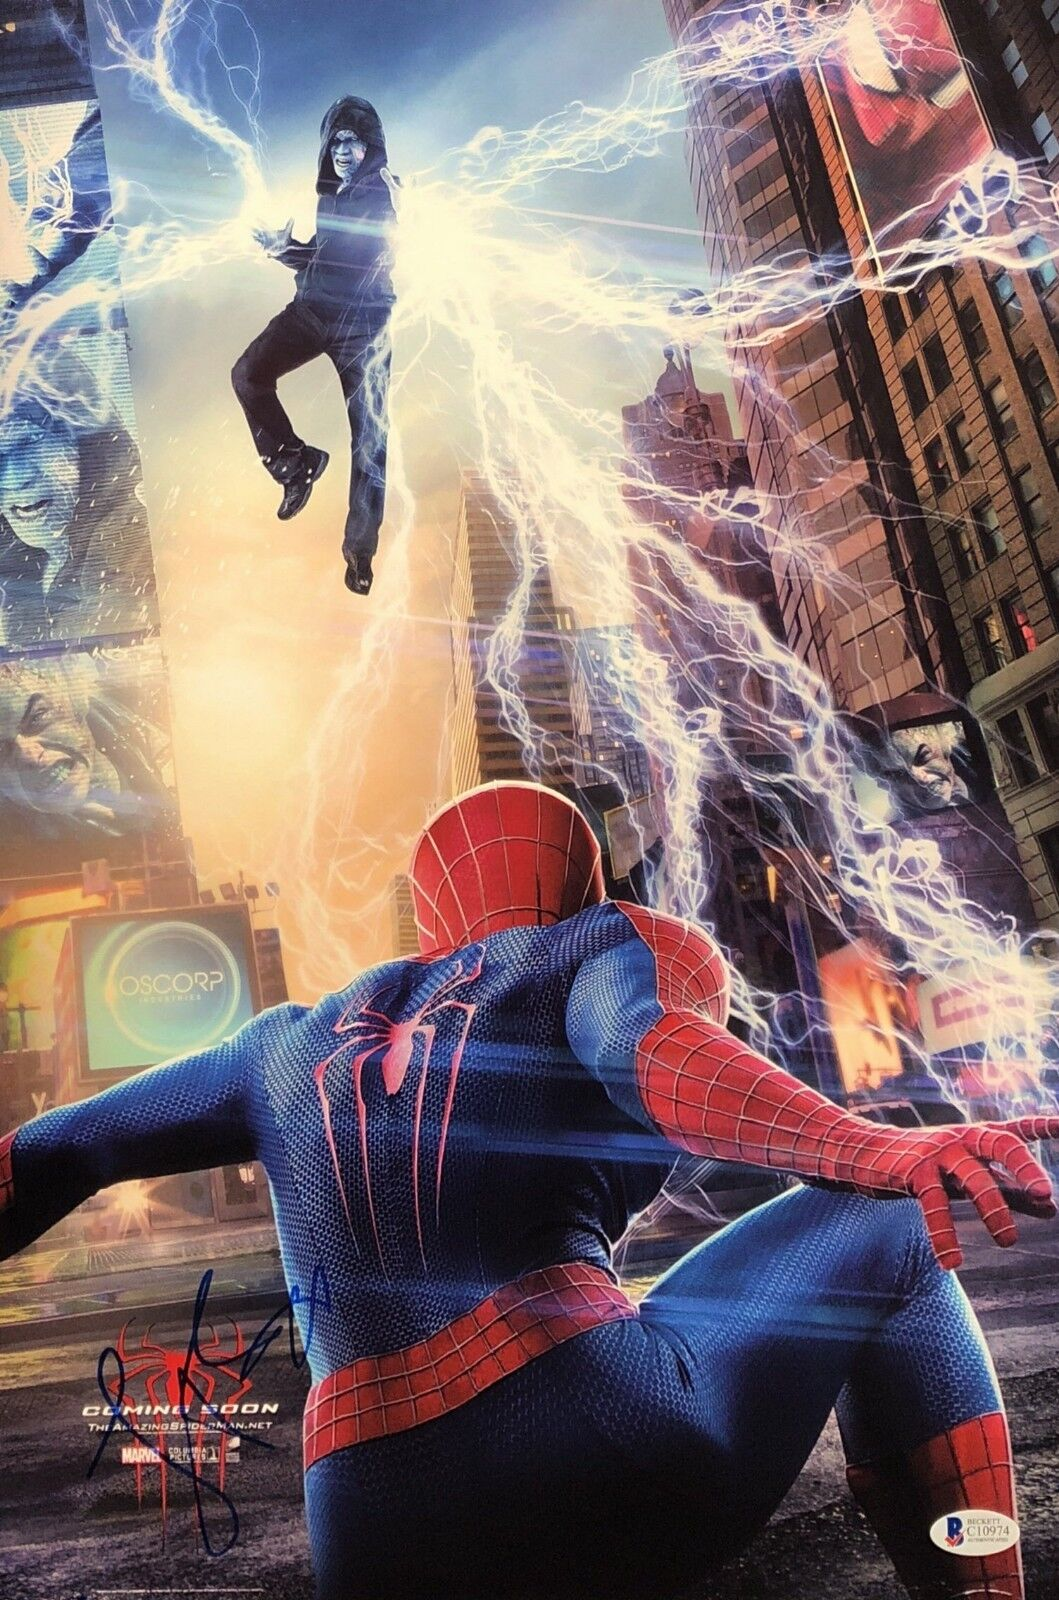 Jamie Foxx Signed The Amazing Spiderman 2 12x18 Photo Electro Beckett BAS C10974